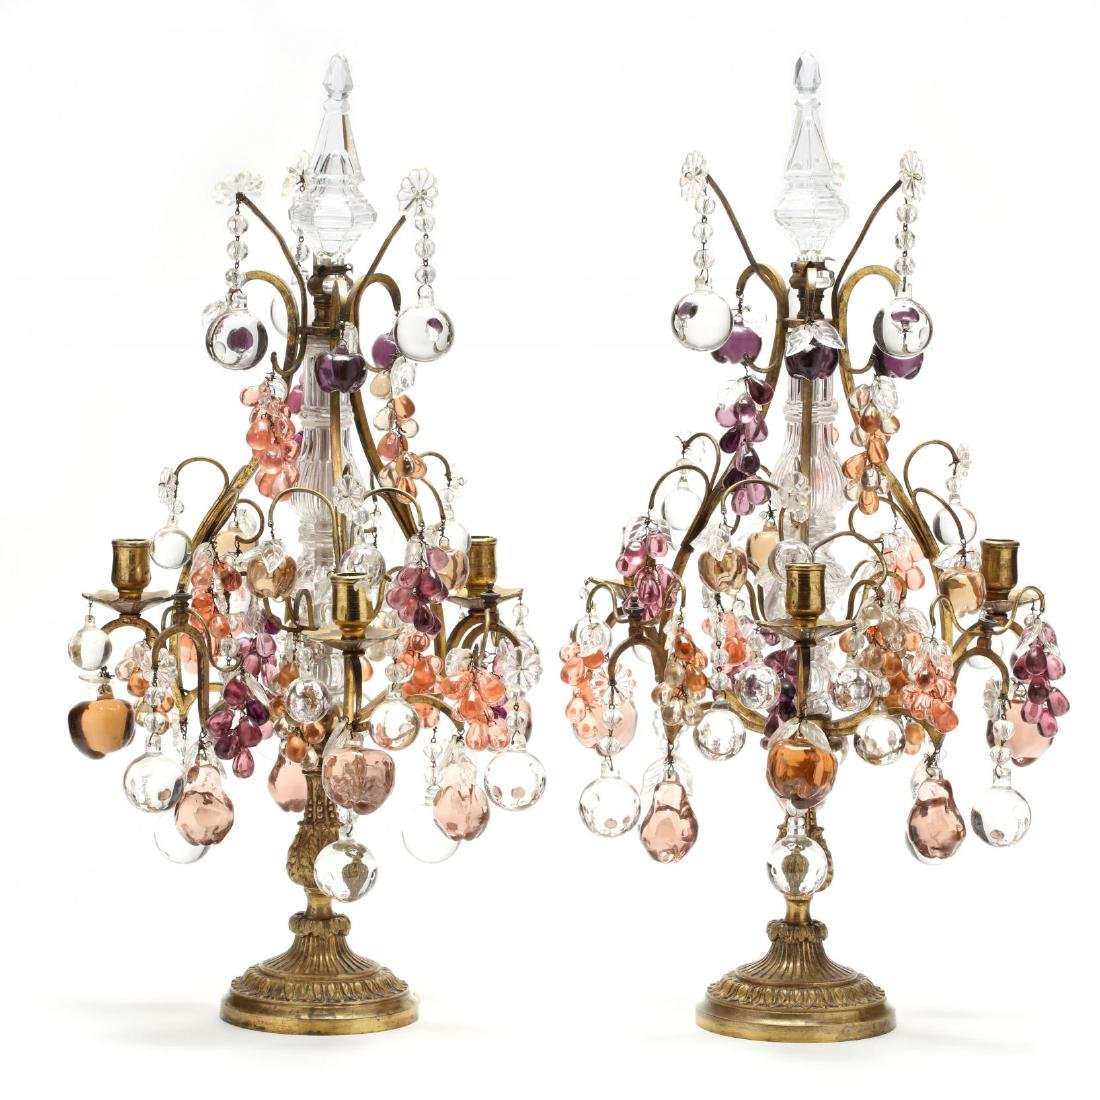 Pair of Antique Italian Drop Prism Candelabra